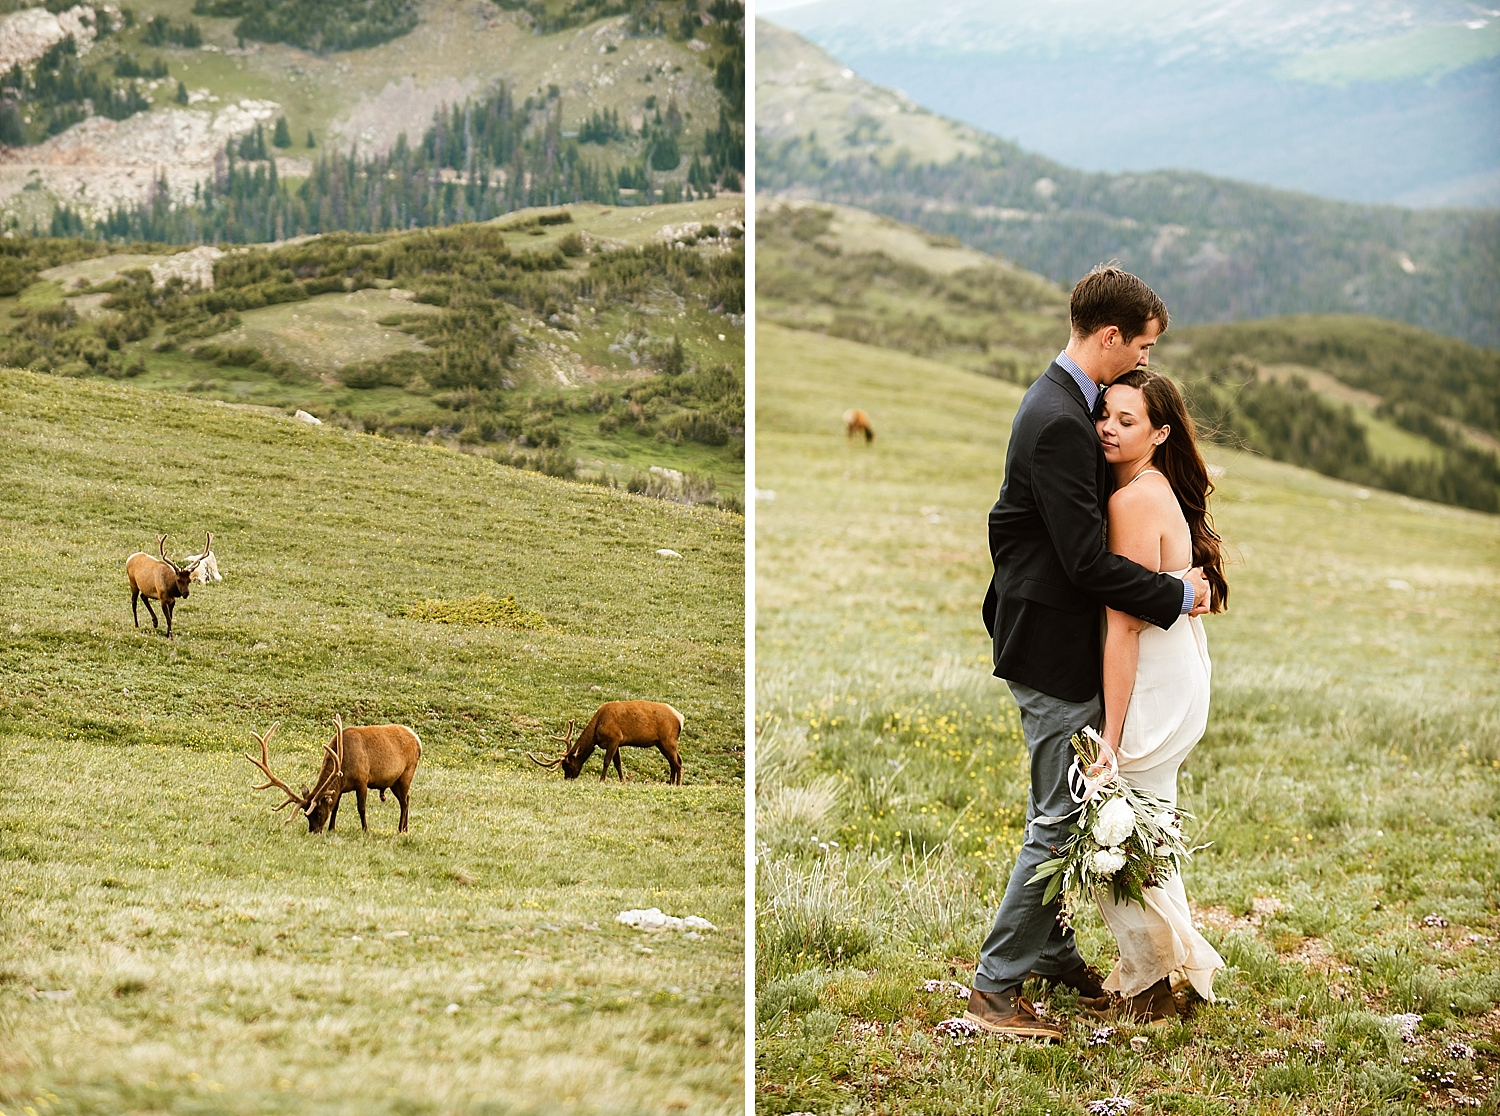 RMNP is the best wedding venue in Colorado! The Rocky Mountains have so much to offer on your wedding day! Check out this heard of elk in the background of this couple's wedding photos! | RMNP ceremony location photos by Colorado elopement photographer, Maddie Mae.